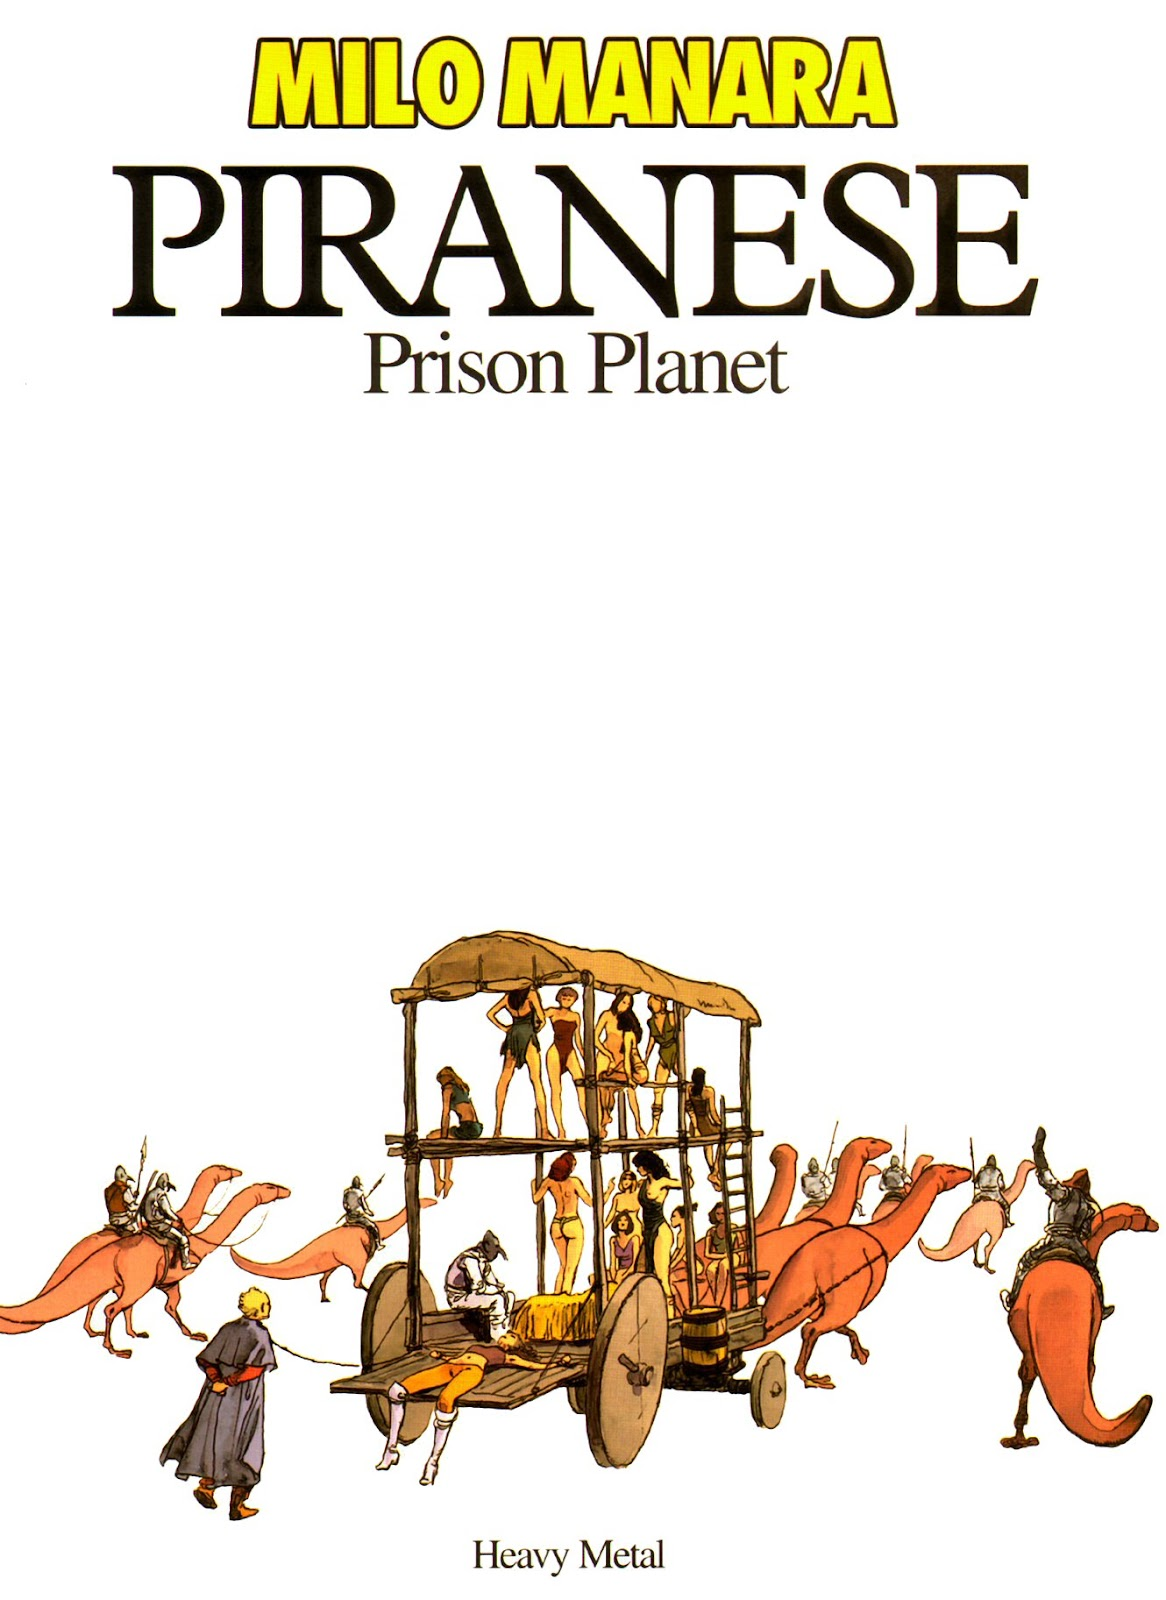 Read online Piranese The Prison Planet comic -  Issue # Full - 4